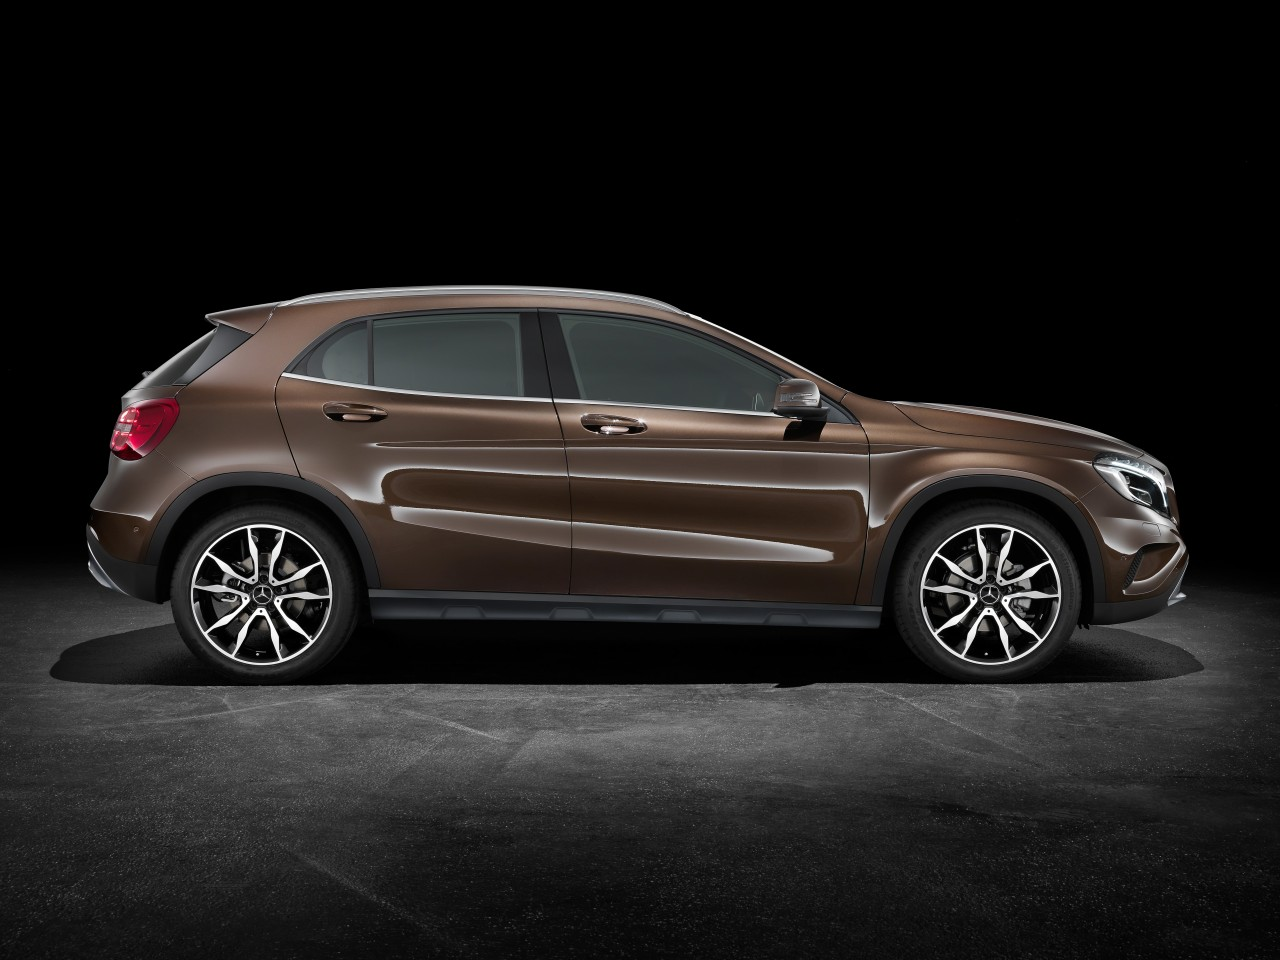 2014 mercedes gla dark cars wallpapers. Black Bedroom Furniture Sets. Home Design Ideas